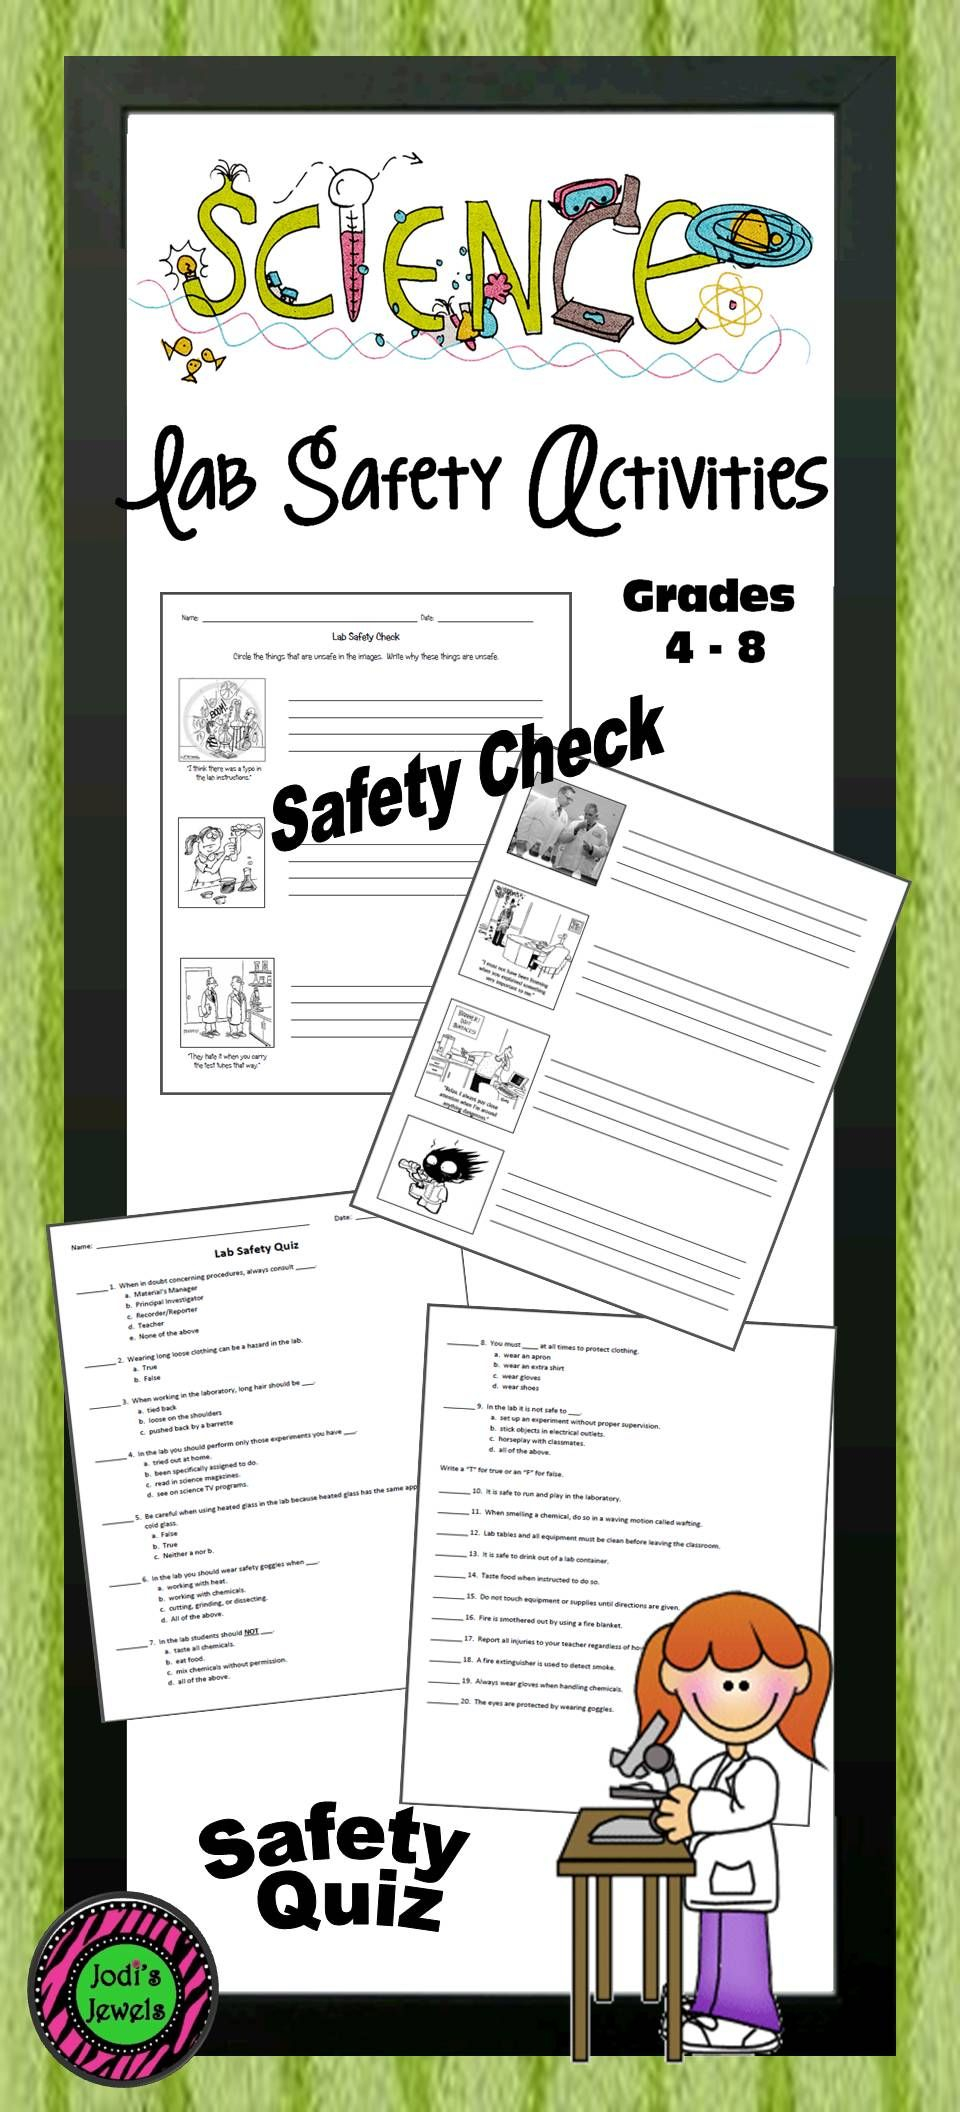 Middle school science lab safety check and quiz. Use humor